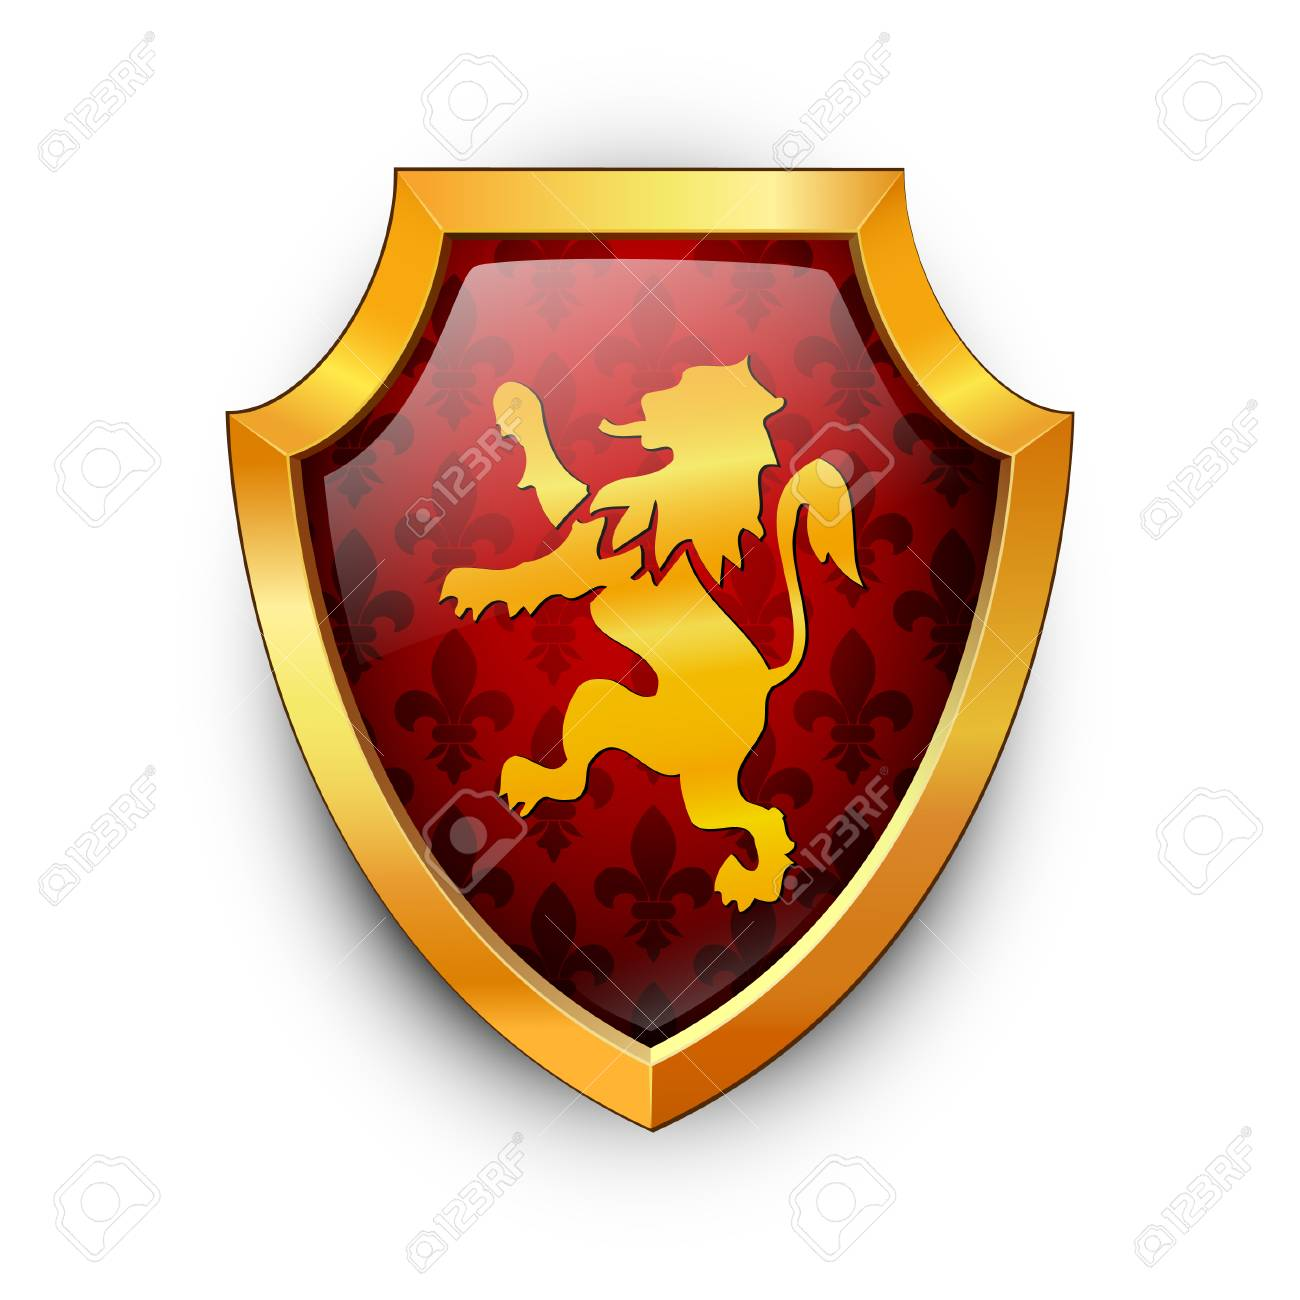 Shield on a white background. Stock Vector - 8325752